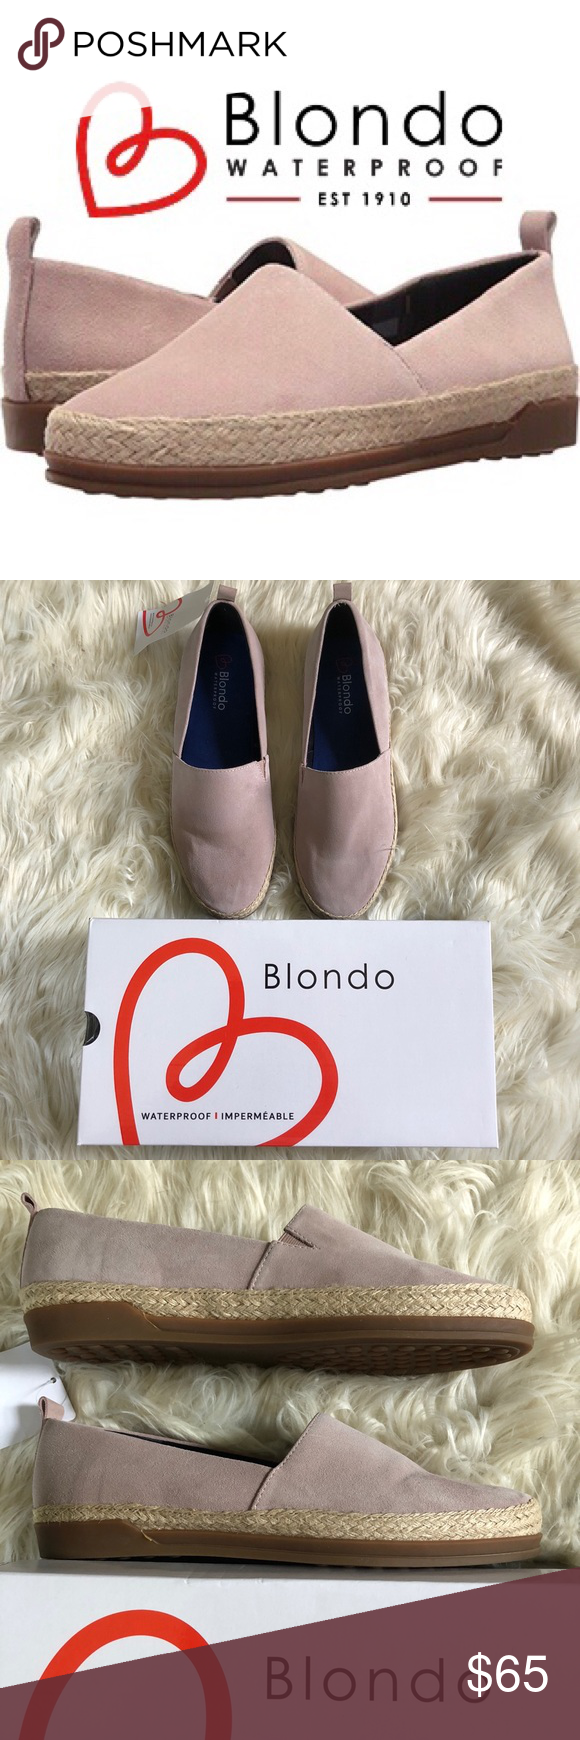 054e84f452a NEW 🌸BLONDO Bailey Flat Women s Waterproof Shoes NEW IN BOX 🌸BLONDO  Bailey Flat Women s Shoes from Nordstrom. Cushioned insole